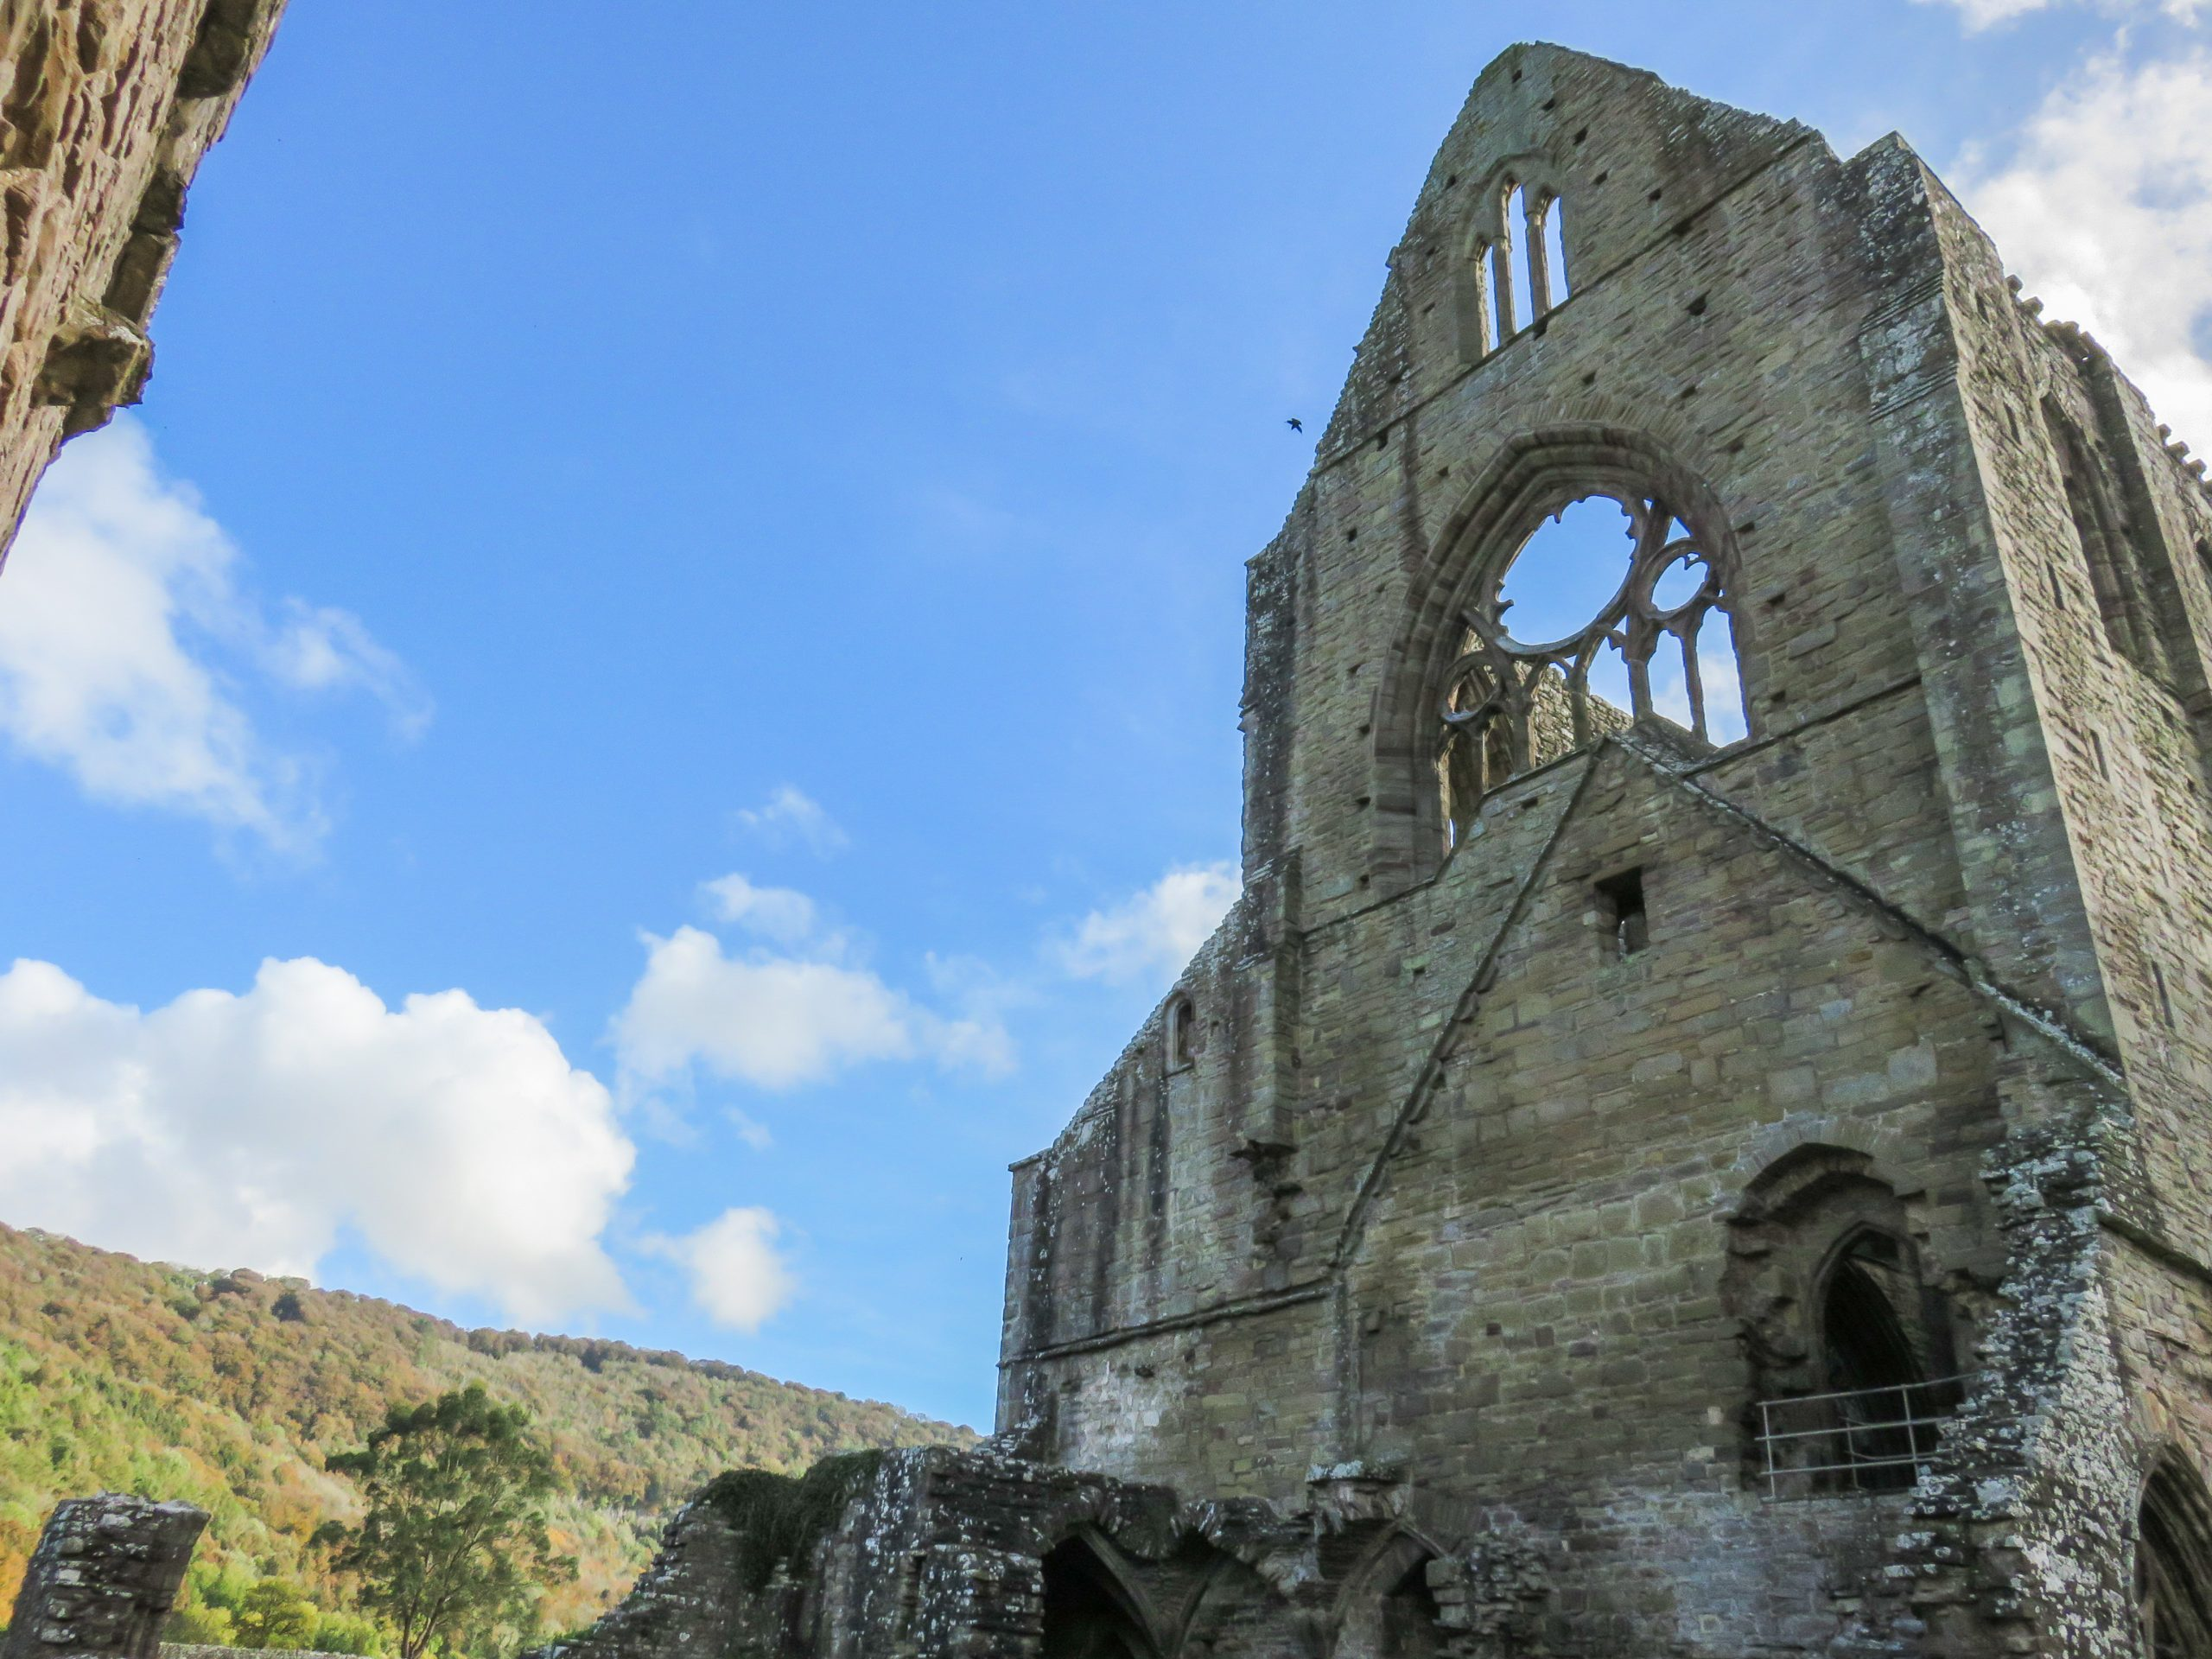 exterior image of tintern abbey looking up to top of abbey